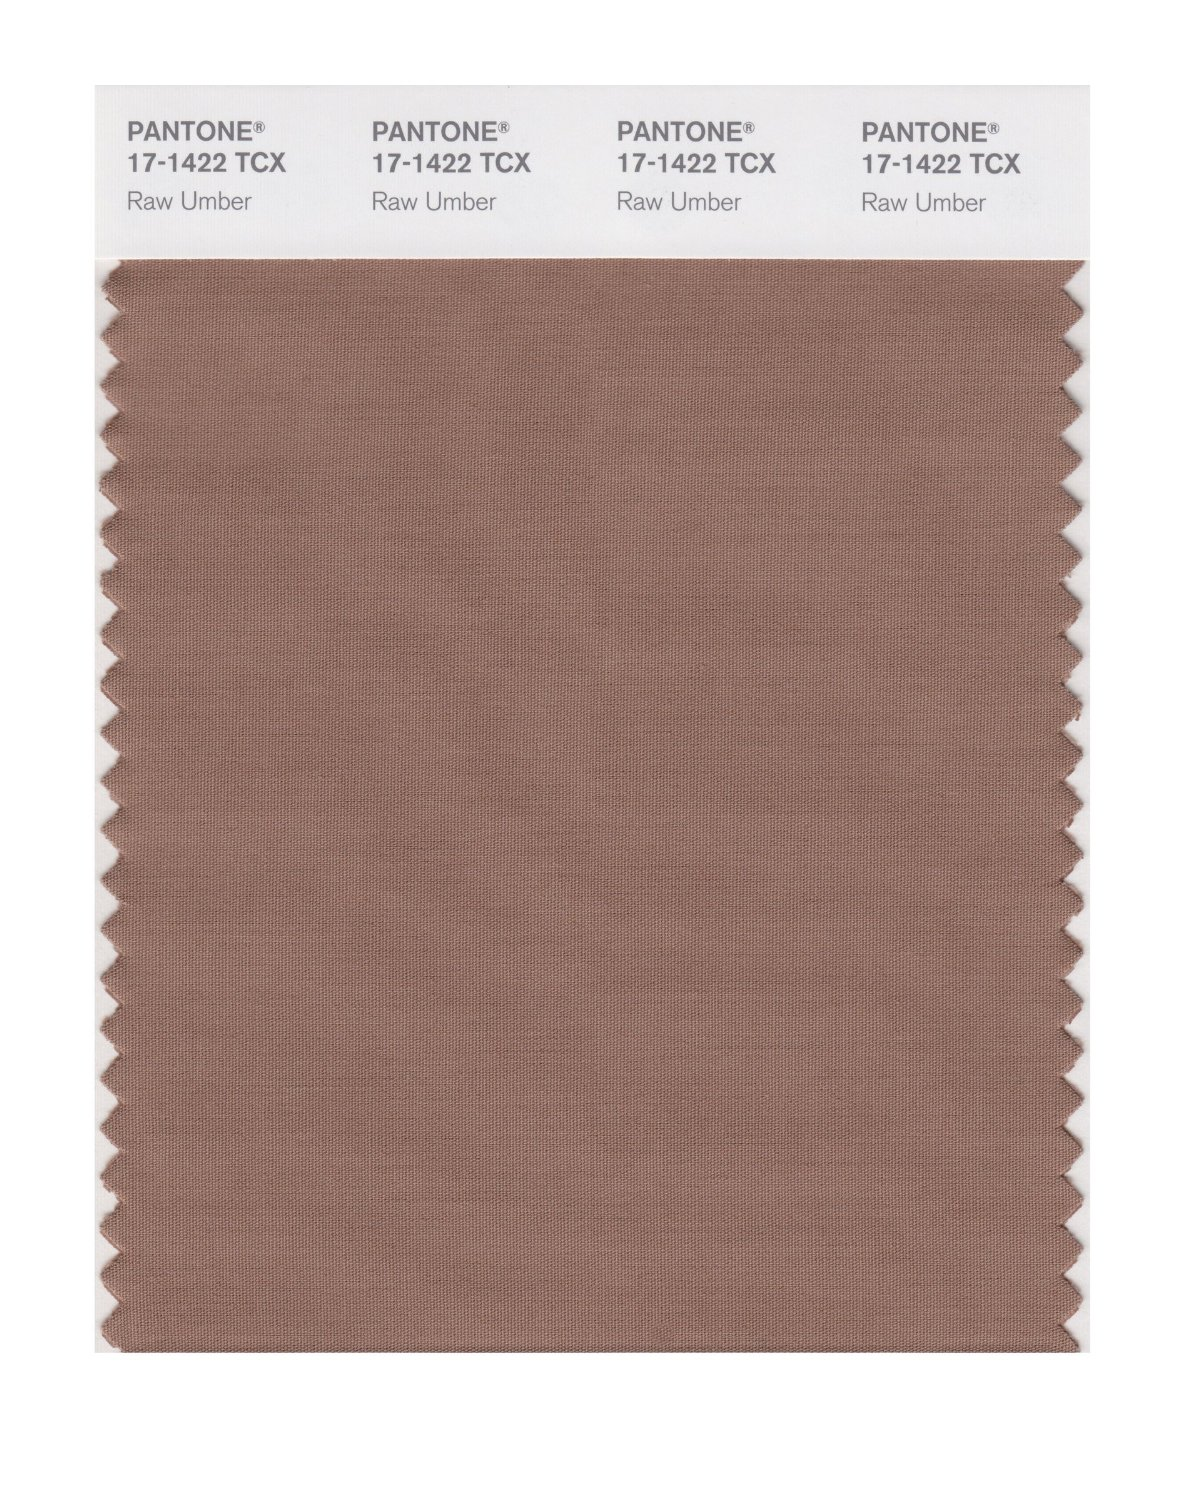 Pantone Smart Swatch 17-1422 Raw Umber